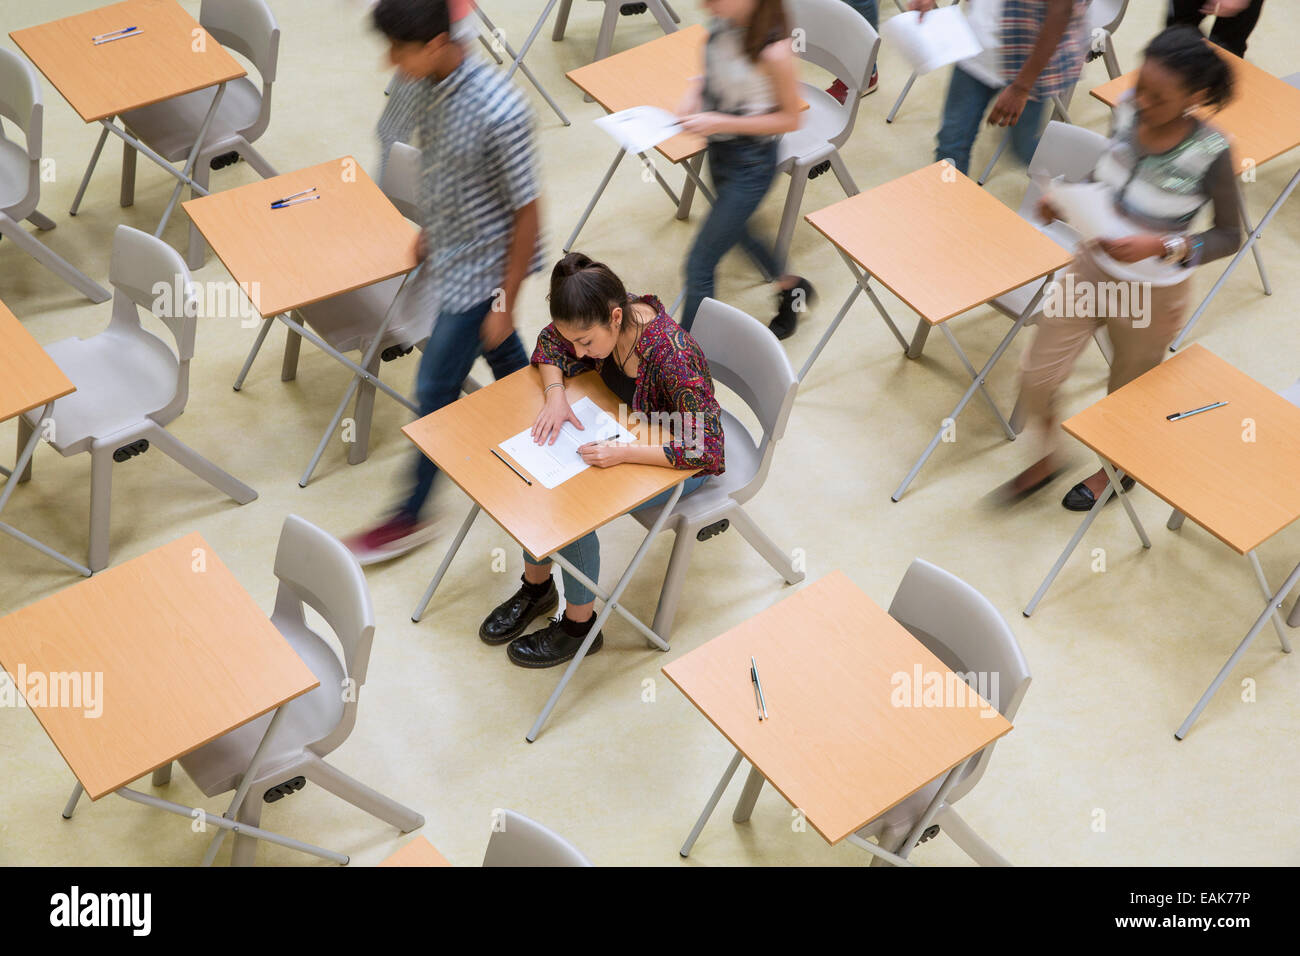 Elevated view of students writing their GCSE exam in classroom - Stock Image